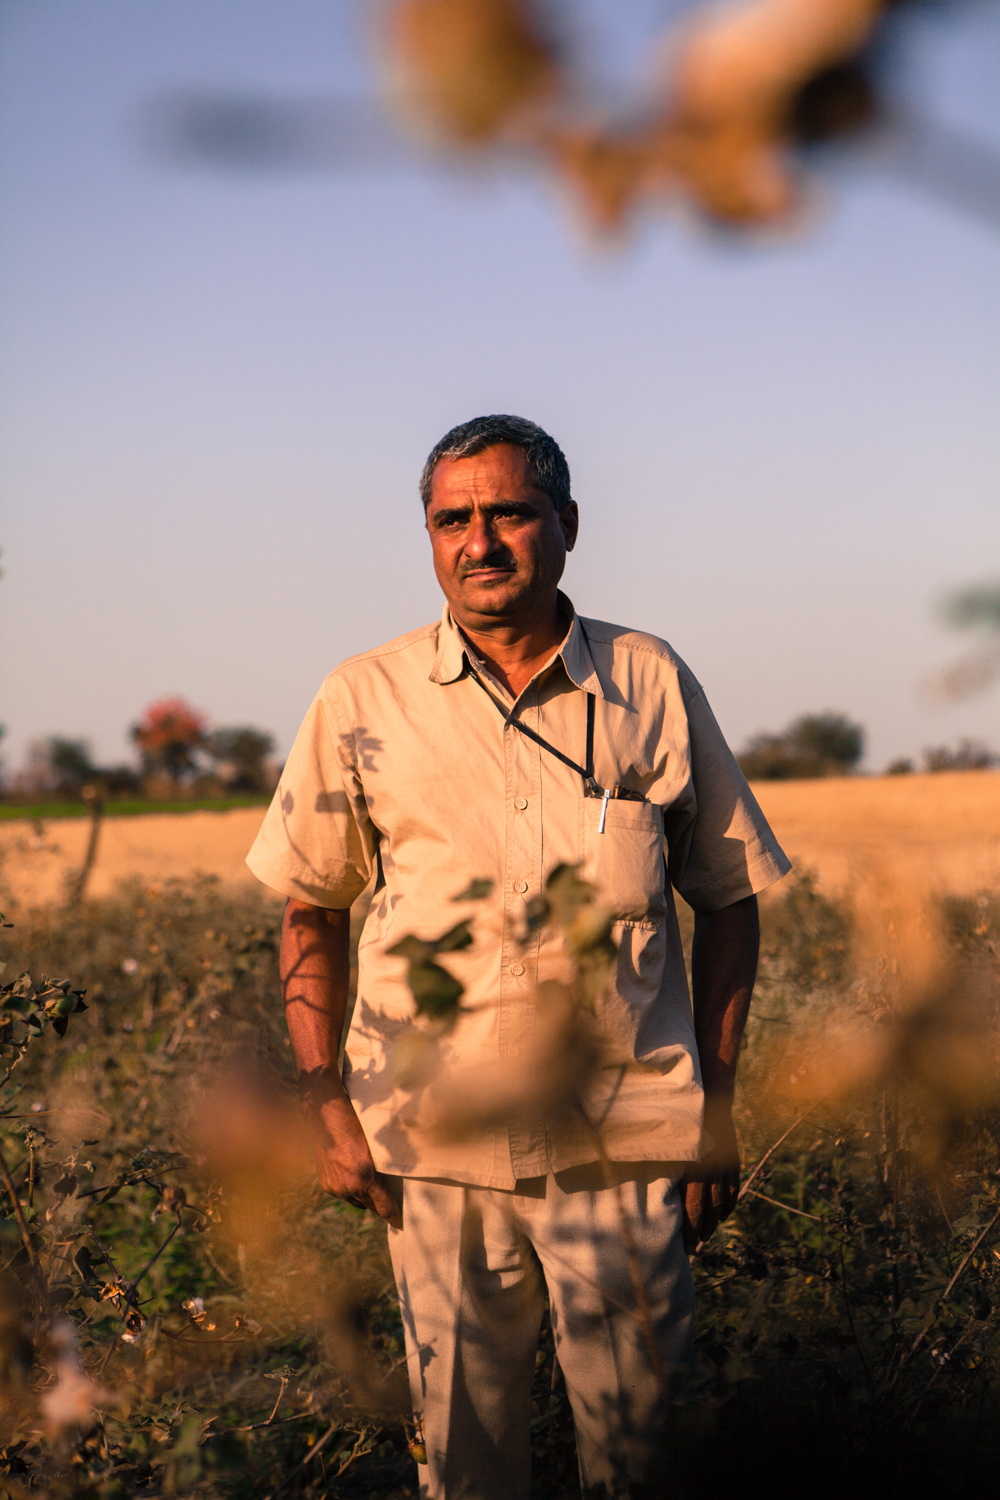 Sanjay Kohle, a farmer and activist from Naya Wathoda village has been educating his community about their rights through his organization, Kisan Ekta Manch.